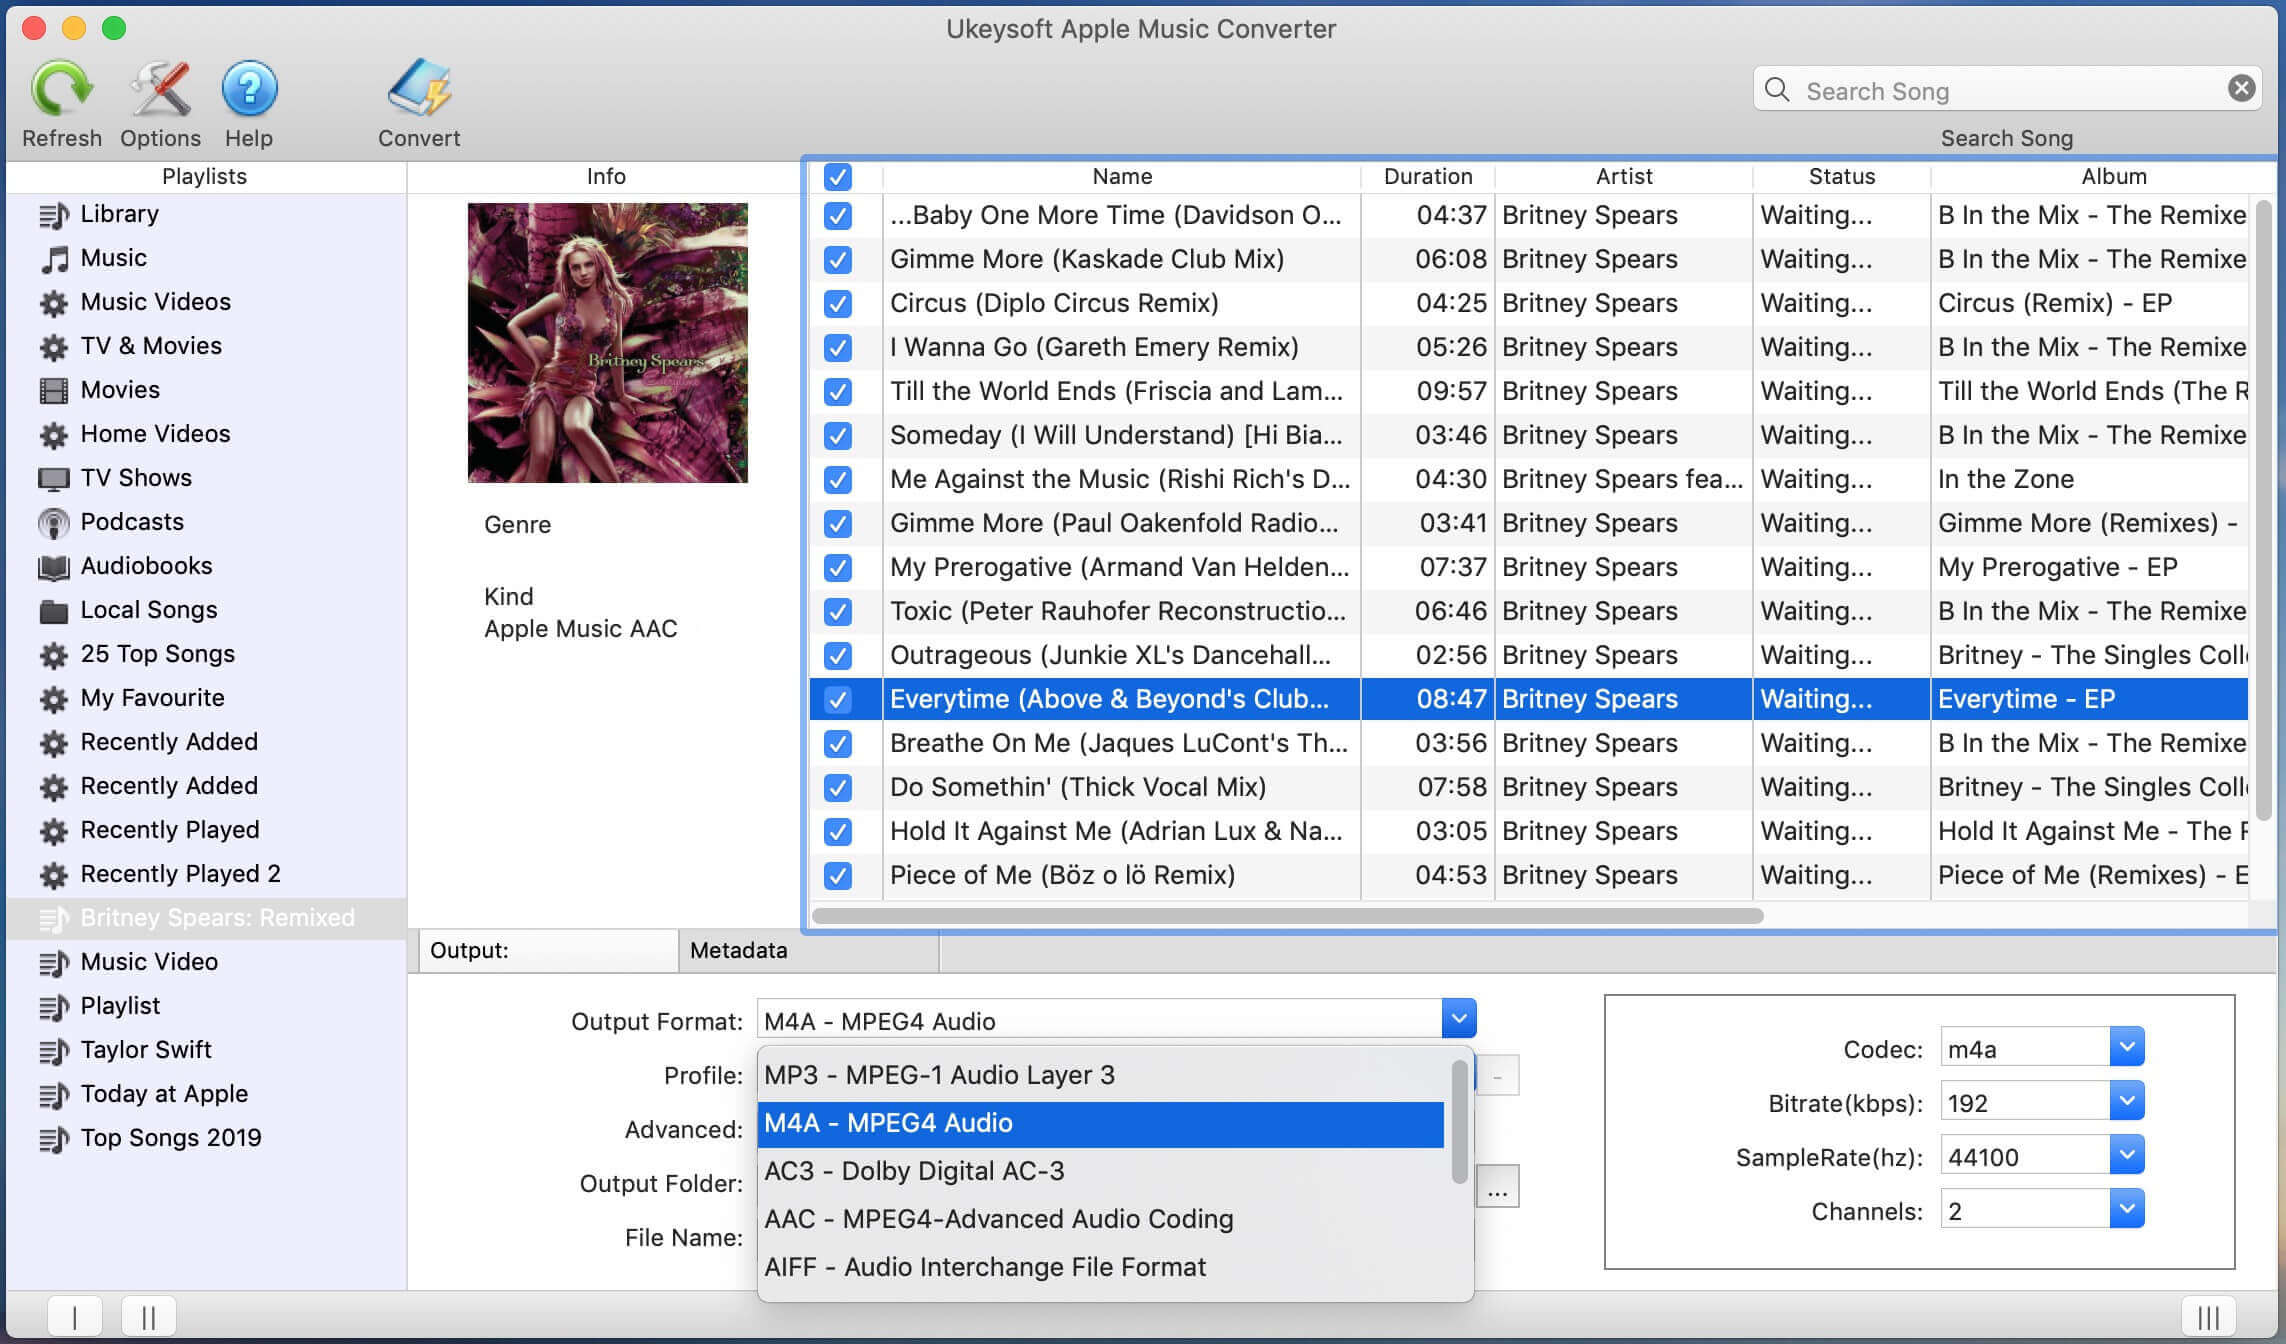 Convert Apple Music to MP3, M4A, AAC, AC3, FLAC, M4R, etc on Mac